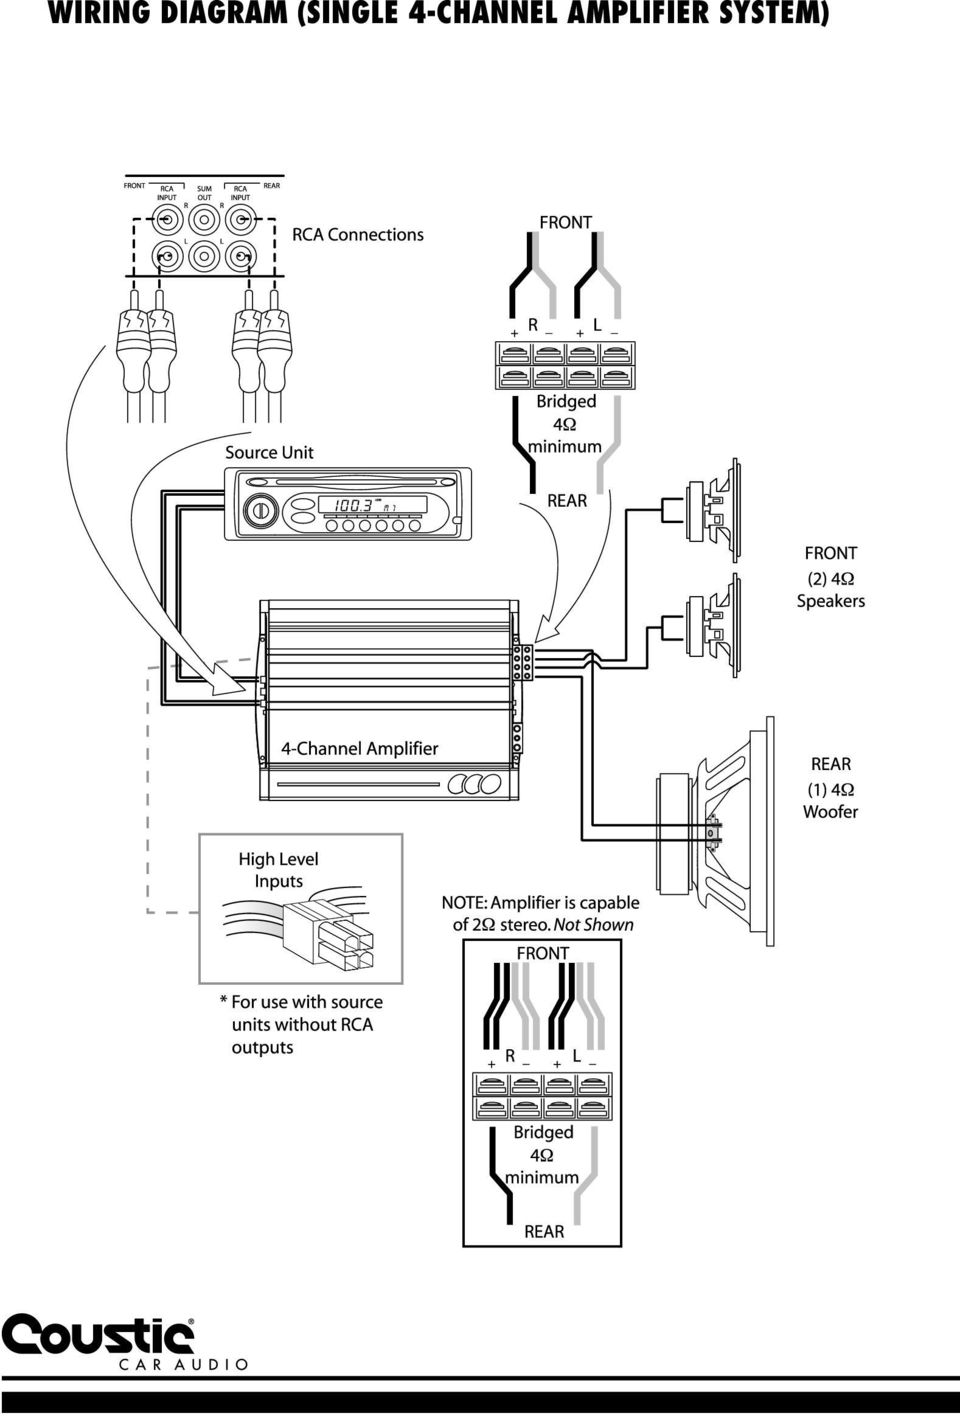 medium resolution of coustic amp wiring diagram wiring diagramcoustic amp wiring diagram wiring diagram imgcoustic amp wiring diagram data